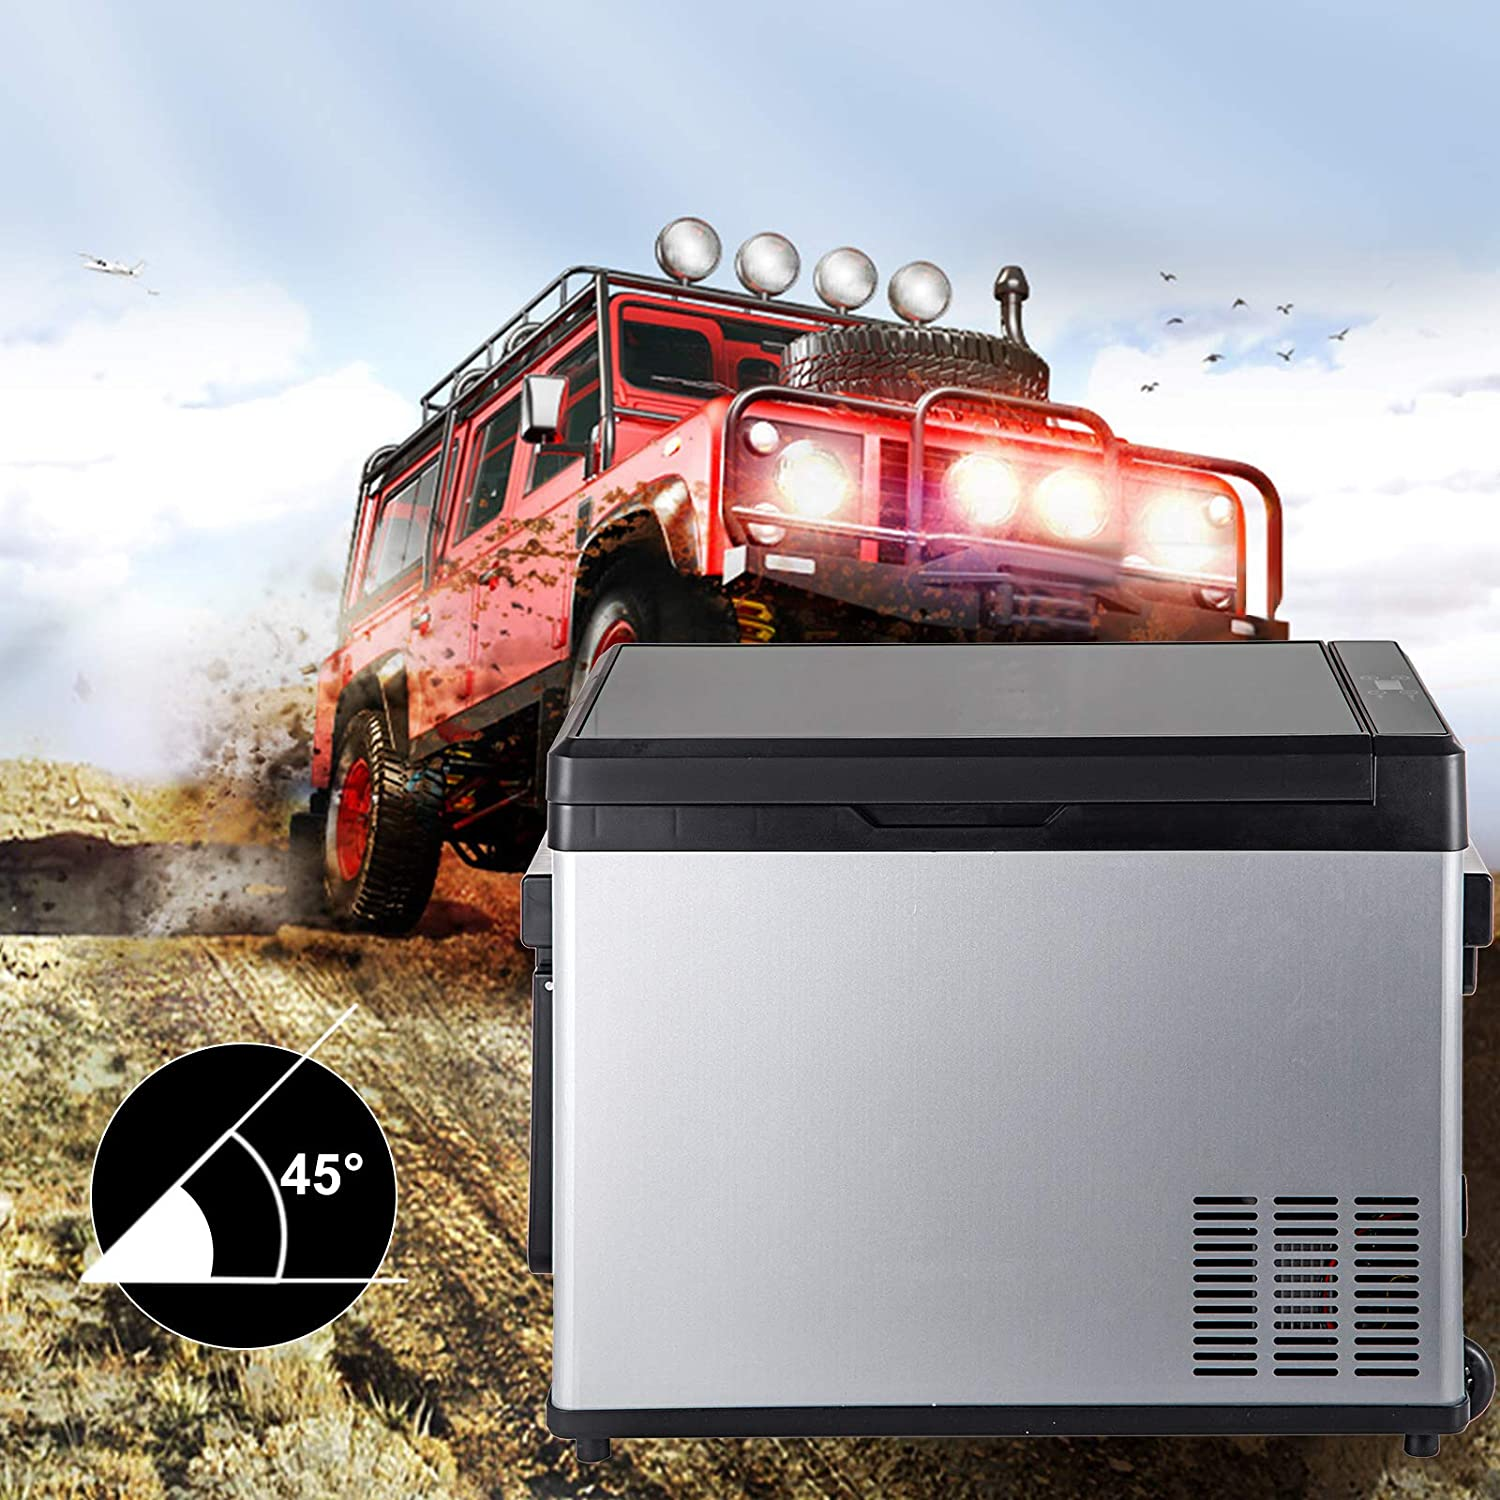 42 Quart Capacity Car Refrigerator,40W Camping Fridge with Compressor,Touch Screen for Leisure Tourism Fishing for Truck RV Camping Travel Outdoor Driving -13℉-68℉ VEVOR Car Freezer 12//24V